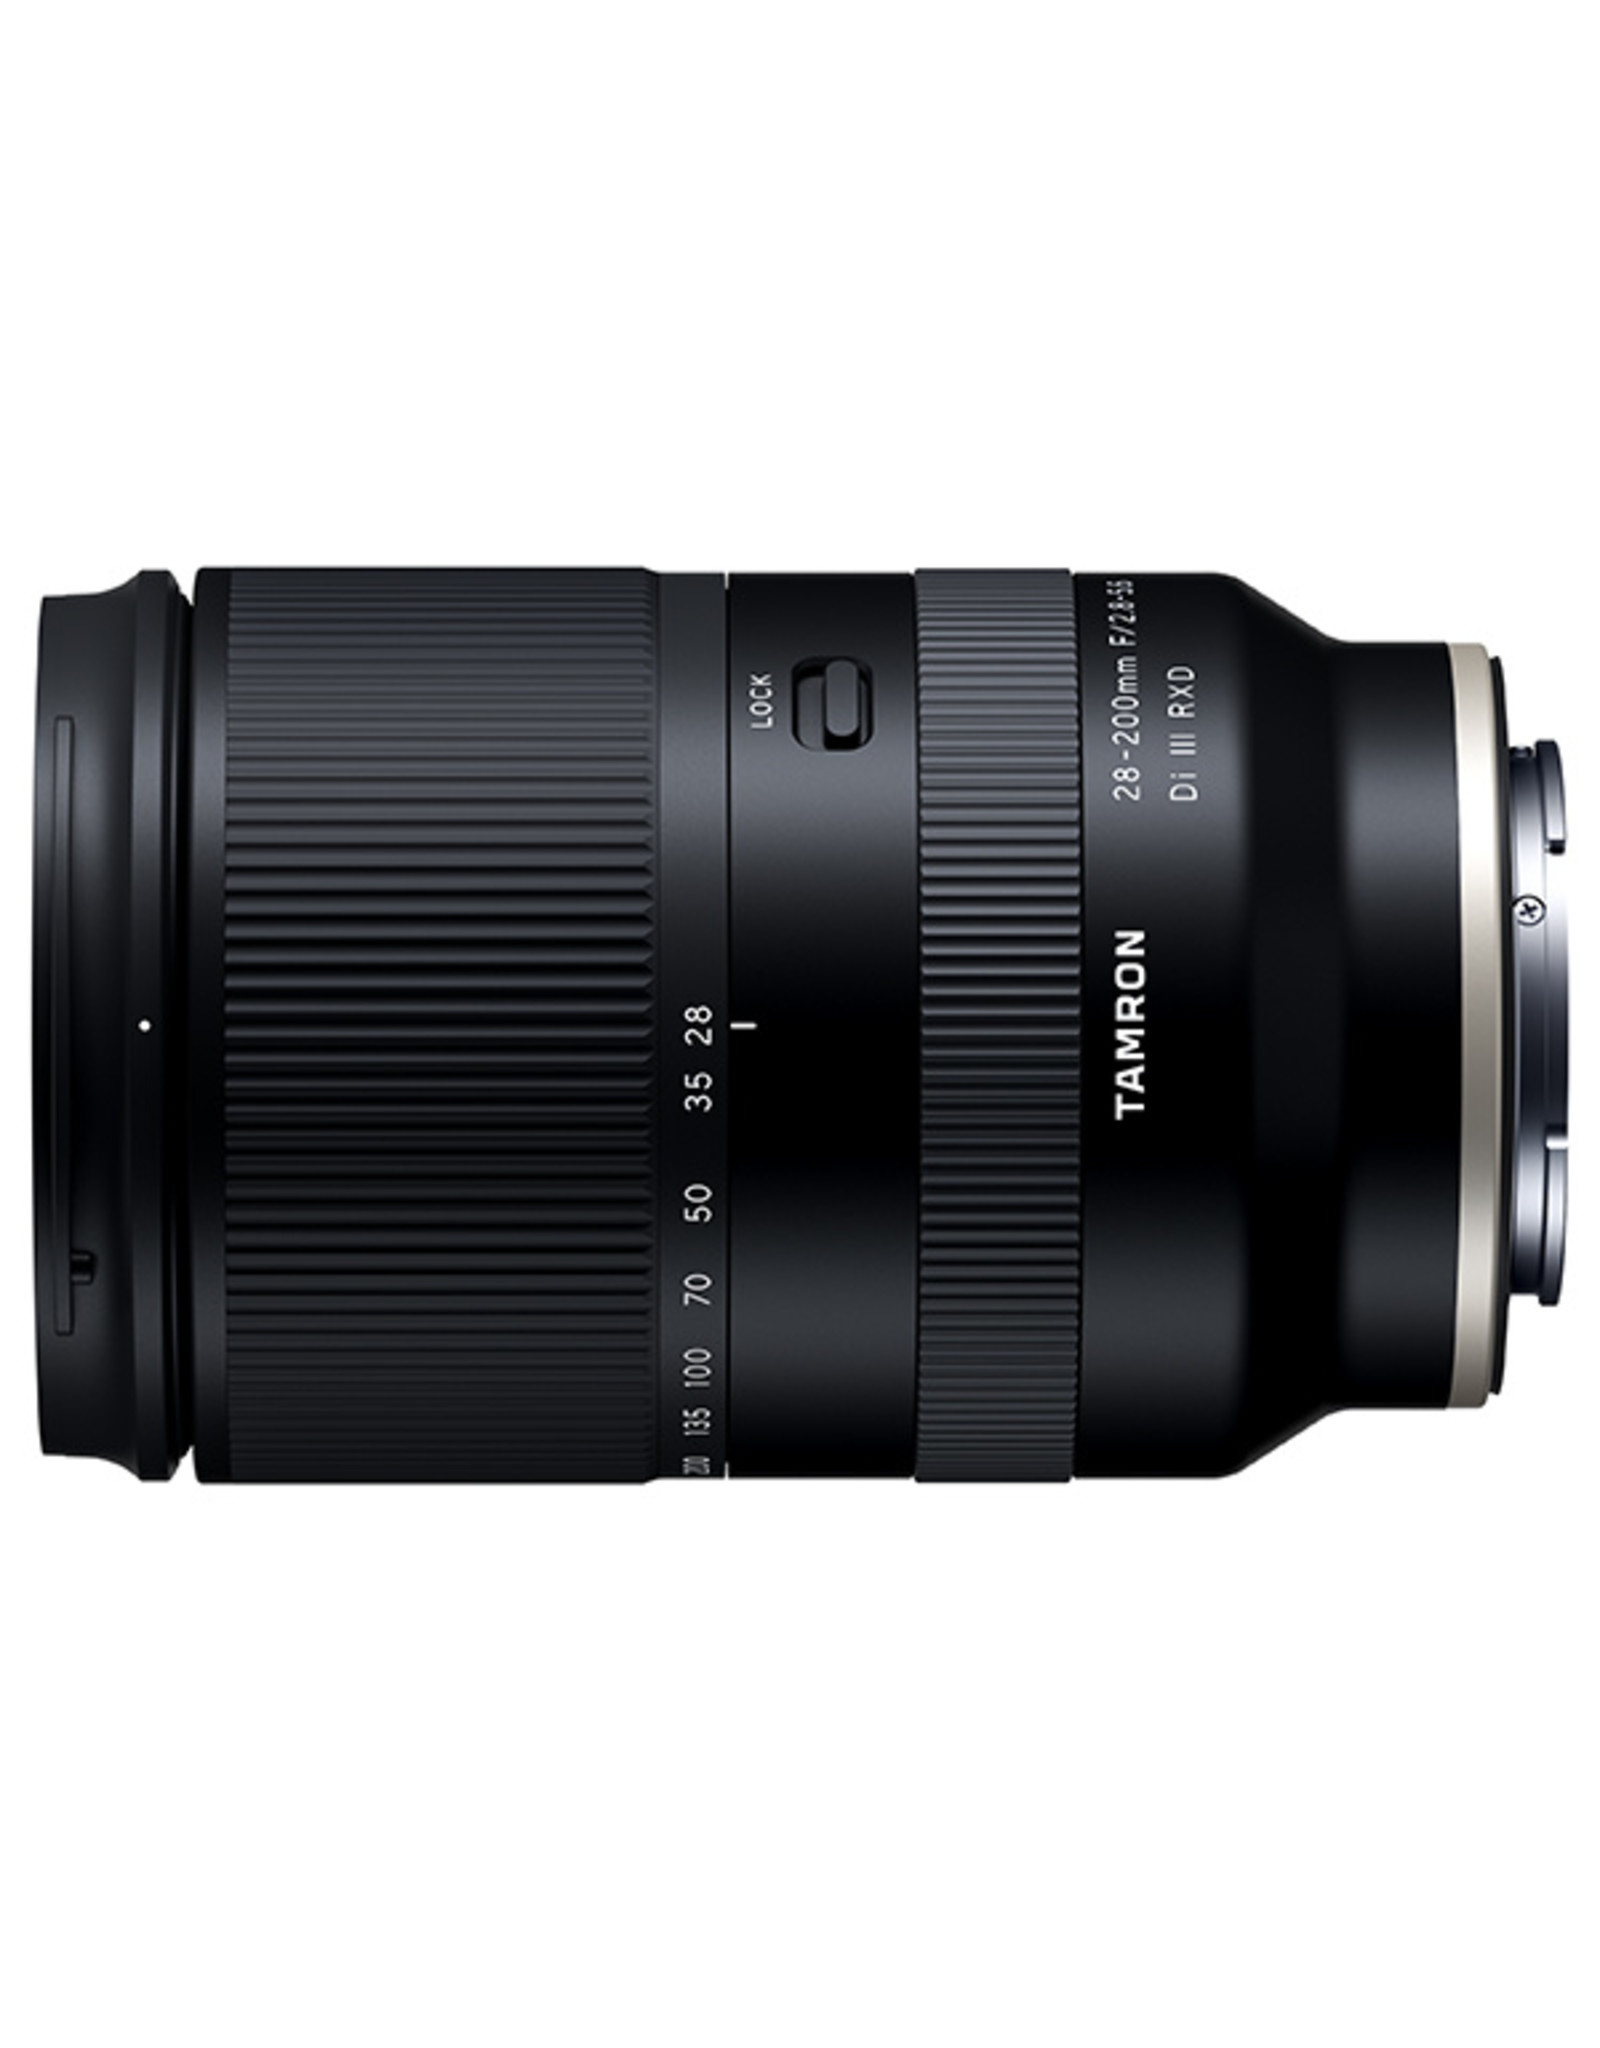 Tamron Tamron 28-200mm F/2.8-5.6 Di III RXD for for Full-Frame and APS-C Sony Mirrorless